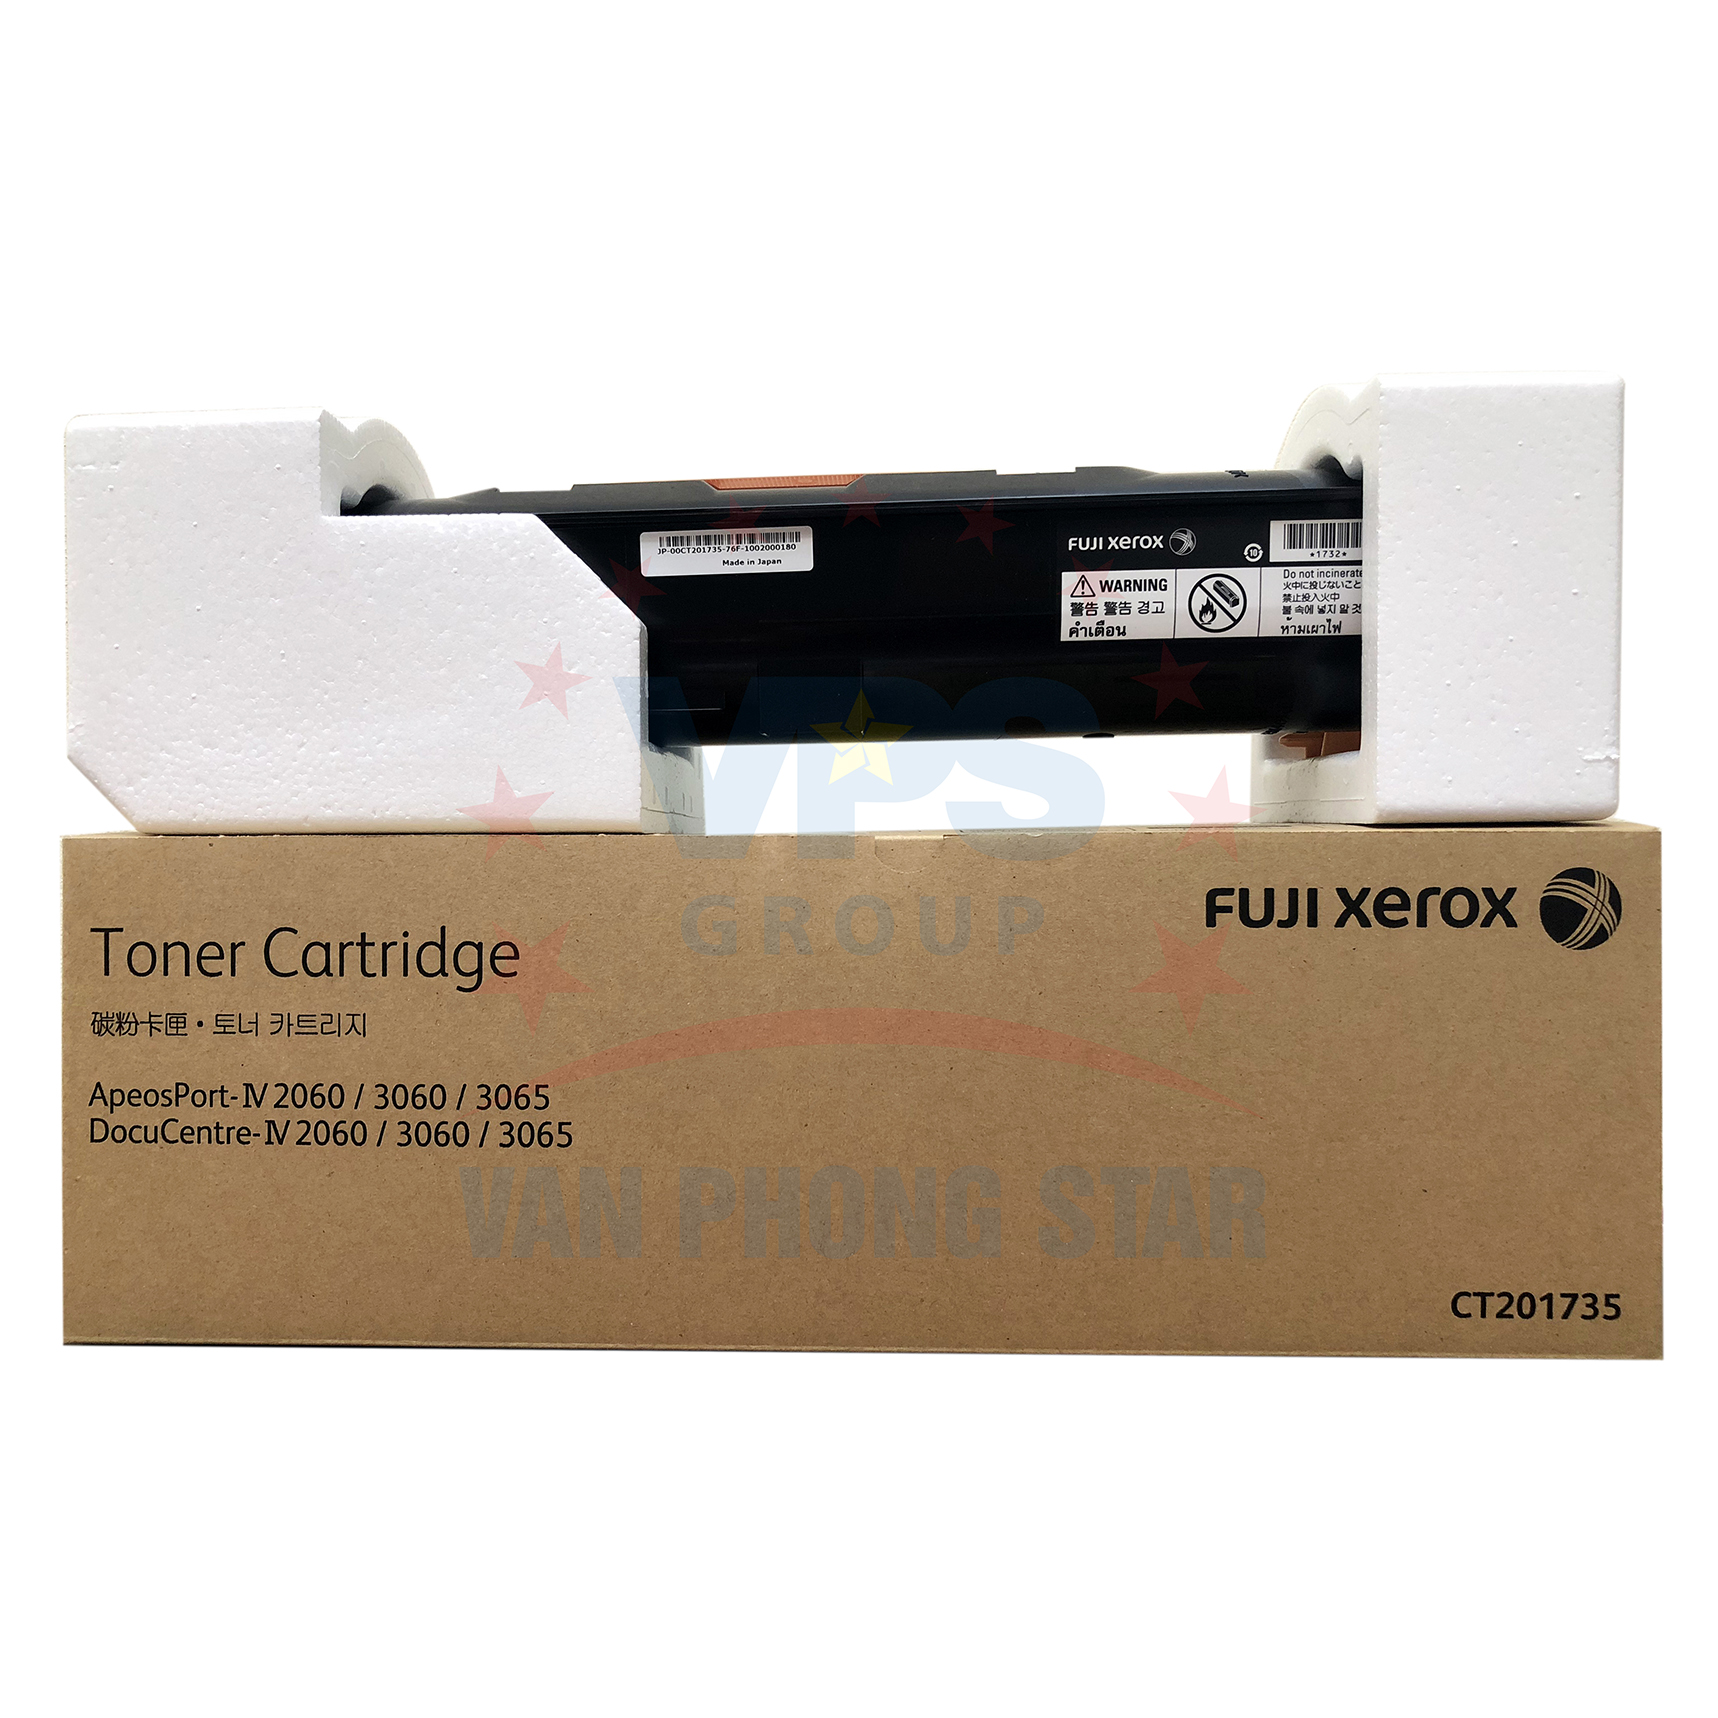 muc-cartridge-ct201735-fuji-xerox-docucentre-iv-2060-3060-3065